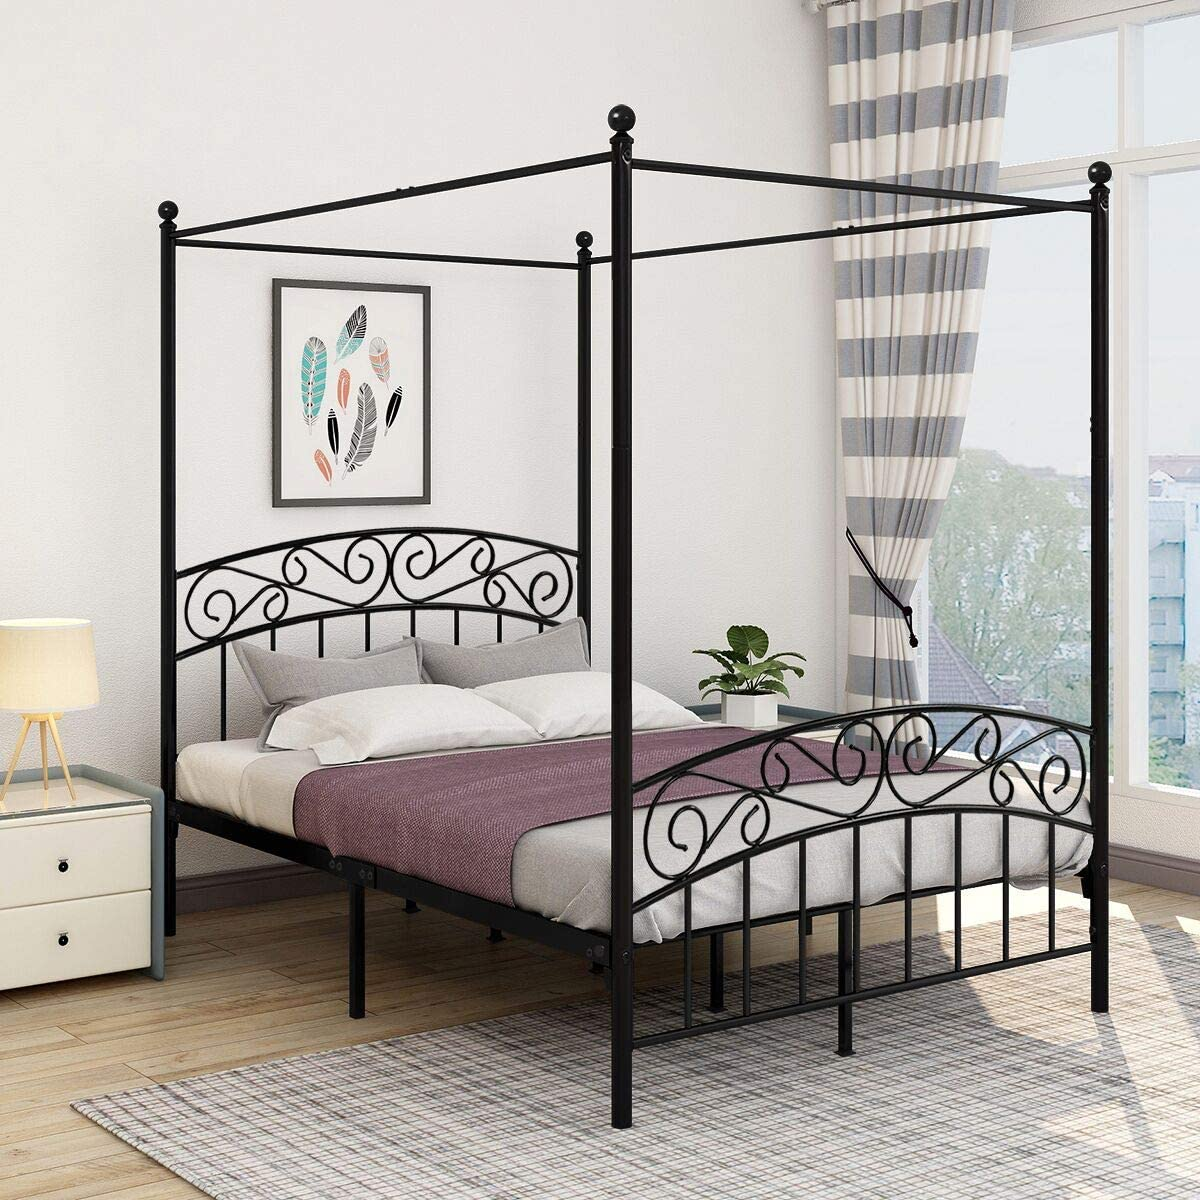 - Amazon.com: JURMERRY Full Size Metal Canopy Bed Frame With Ornate